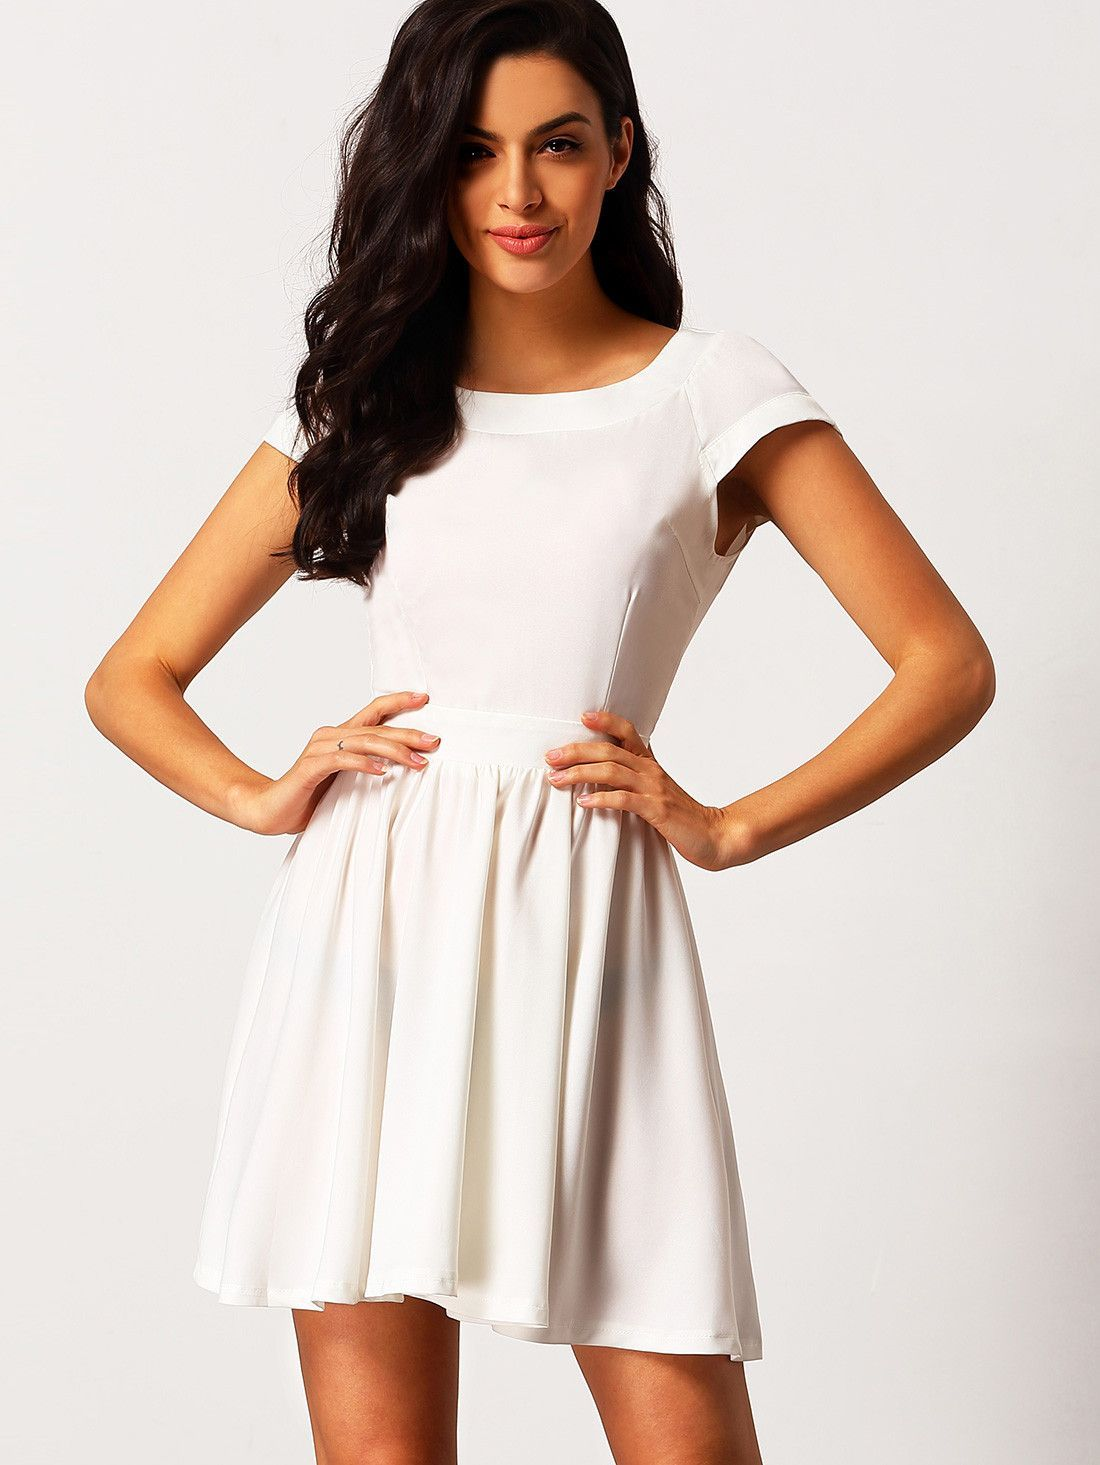 to wear - Casual white dress graduation pinterest video